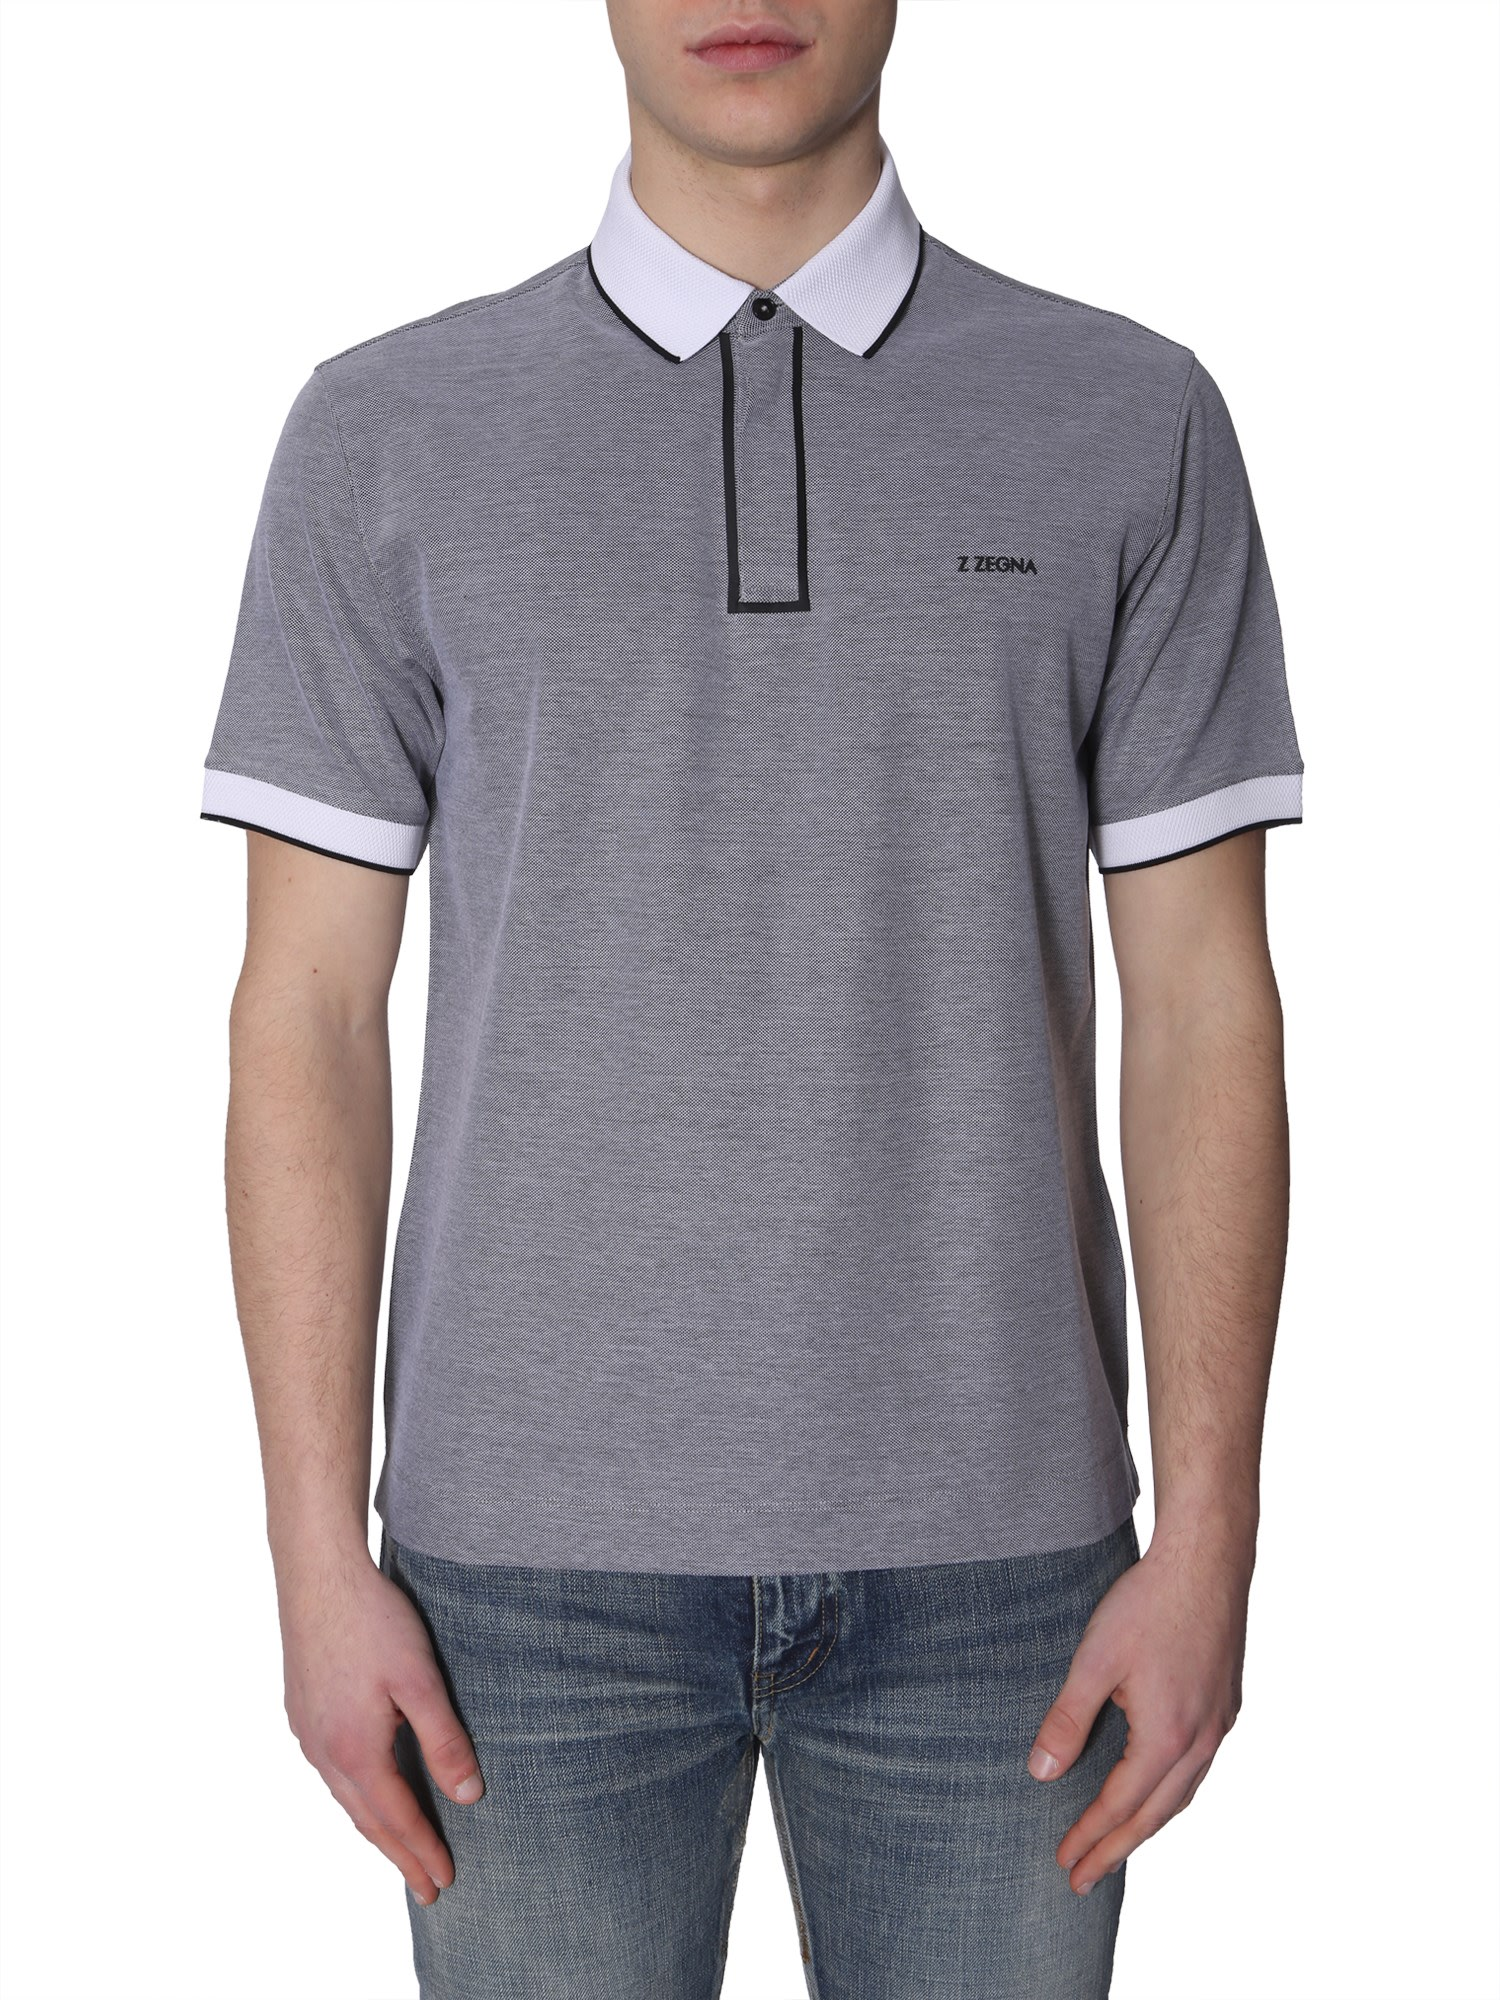 668189a0b4 Z Zegna Cotton Polo T-shirt